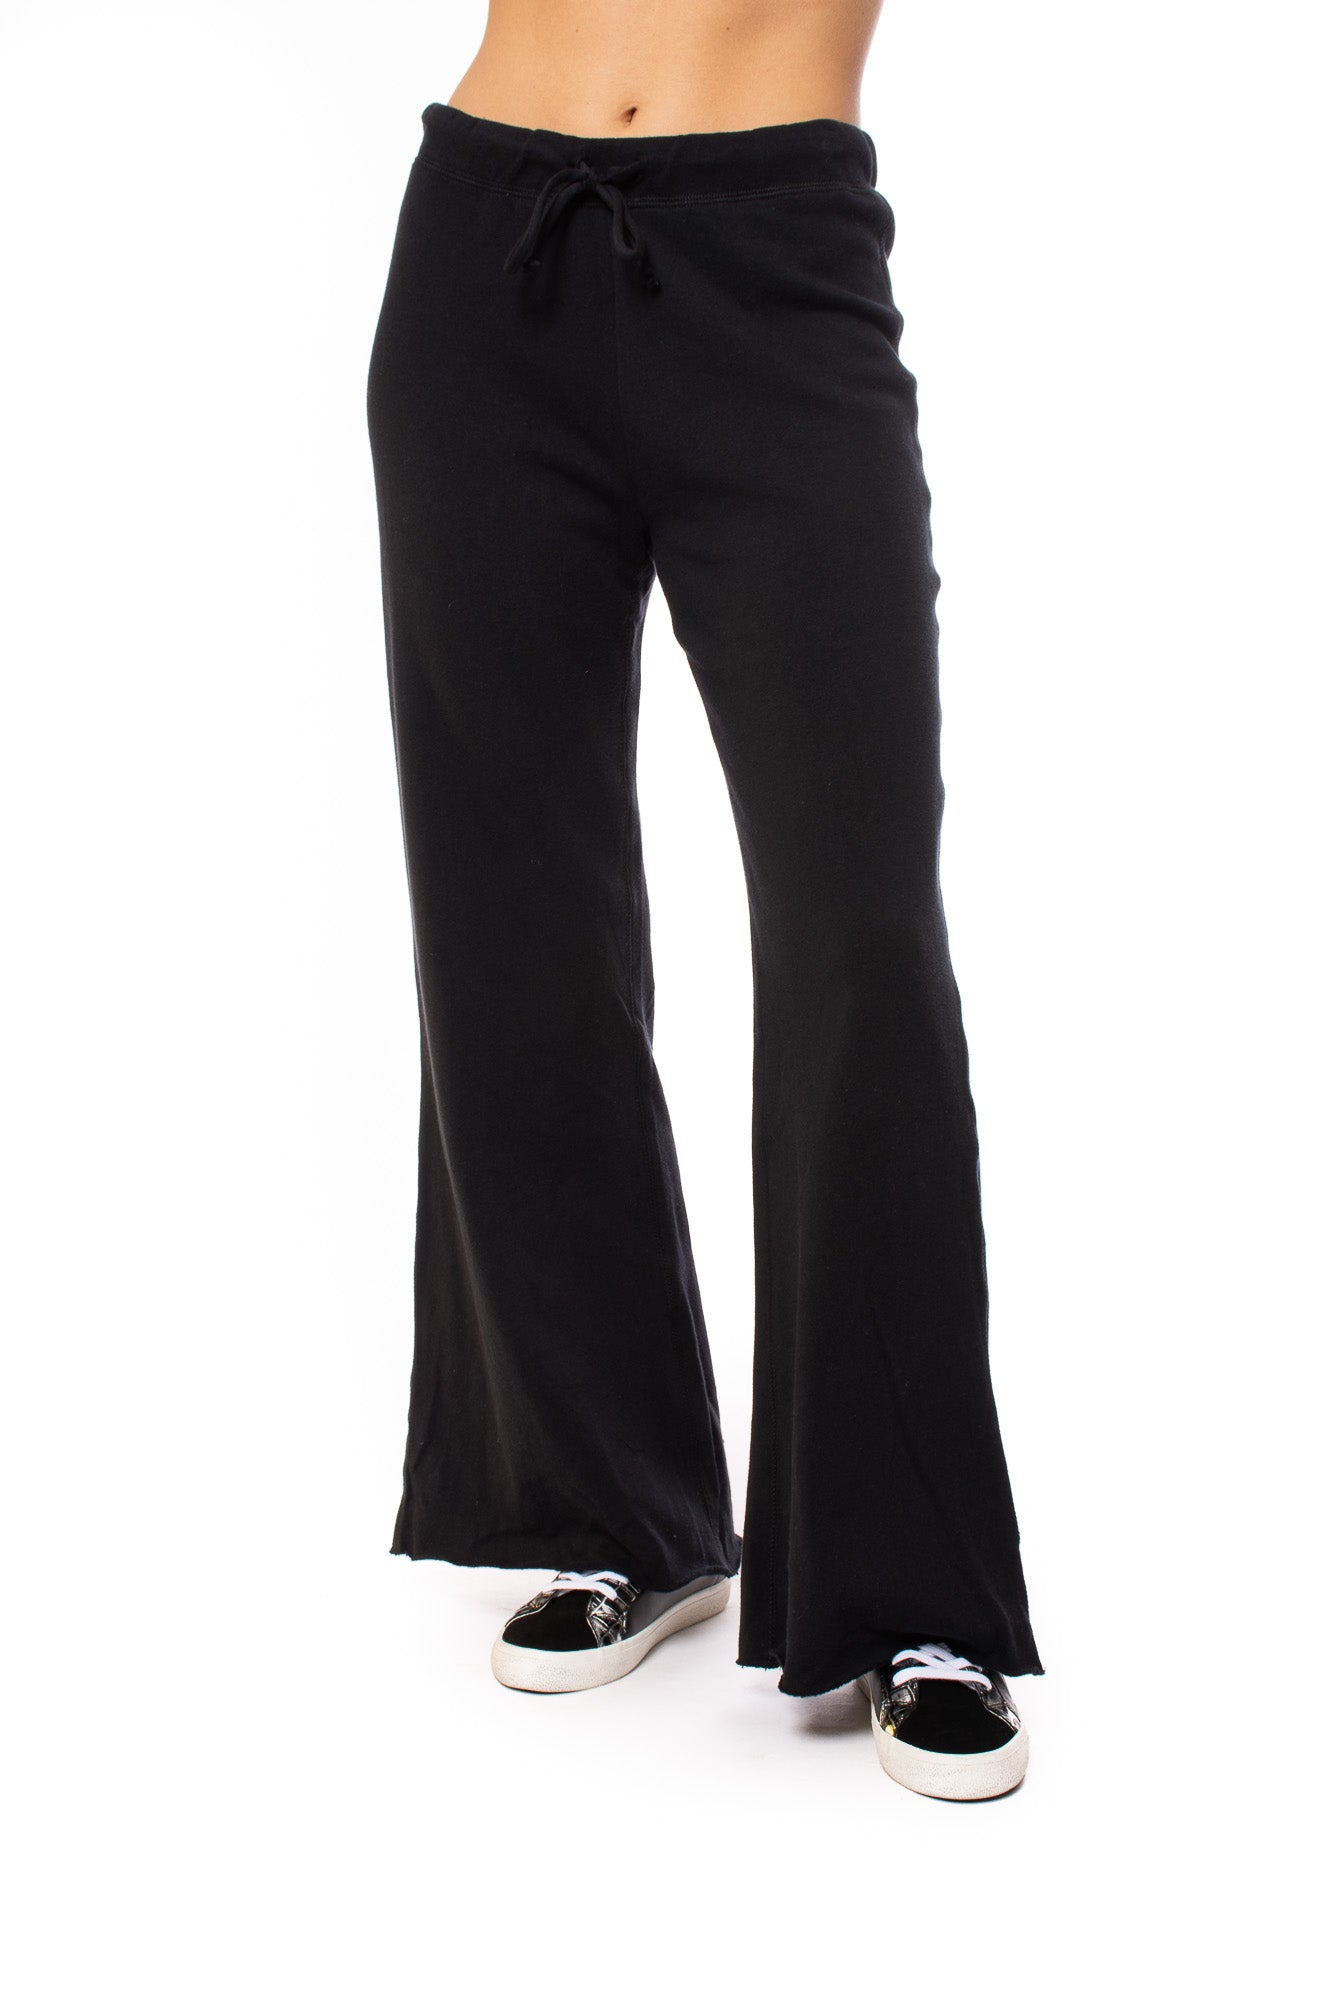 Chaser - Cotton Fleece Wide Leg Drawstring Lounger (CW8579, Black)